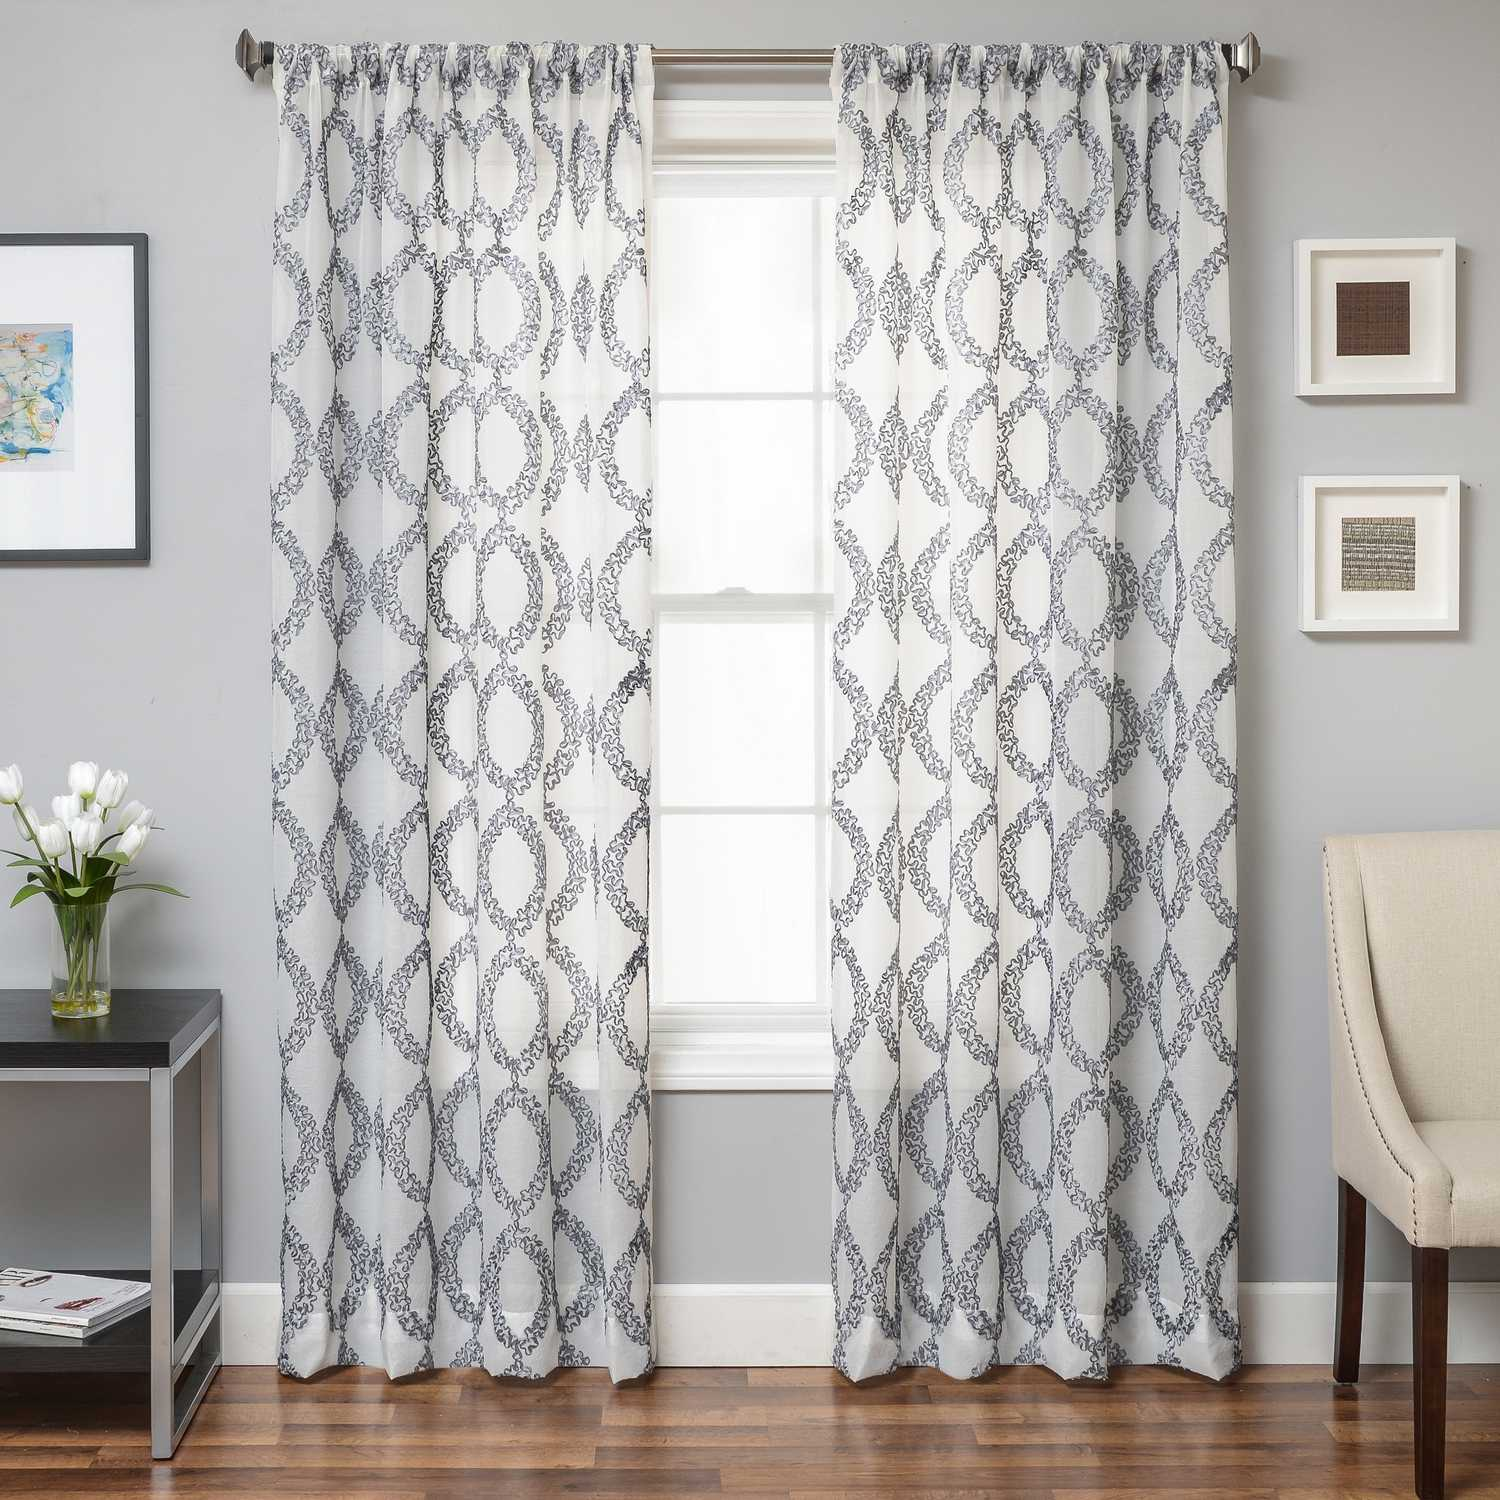 n pocket rod l curtains drapes treatments white curtain depot b home window silver and eclipse the